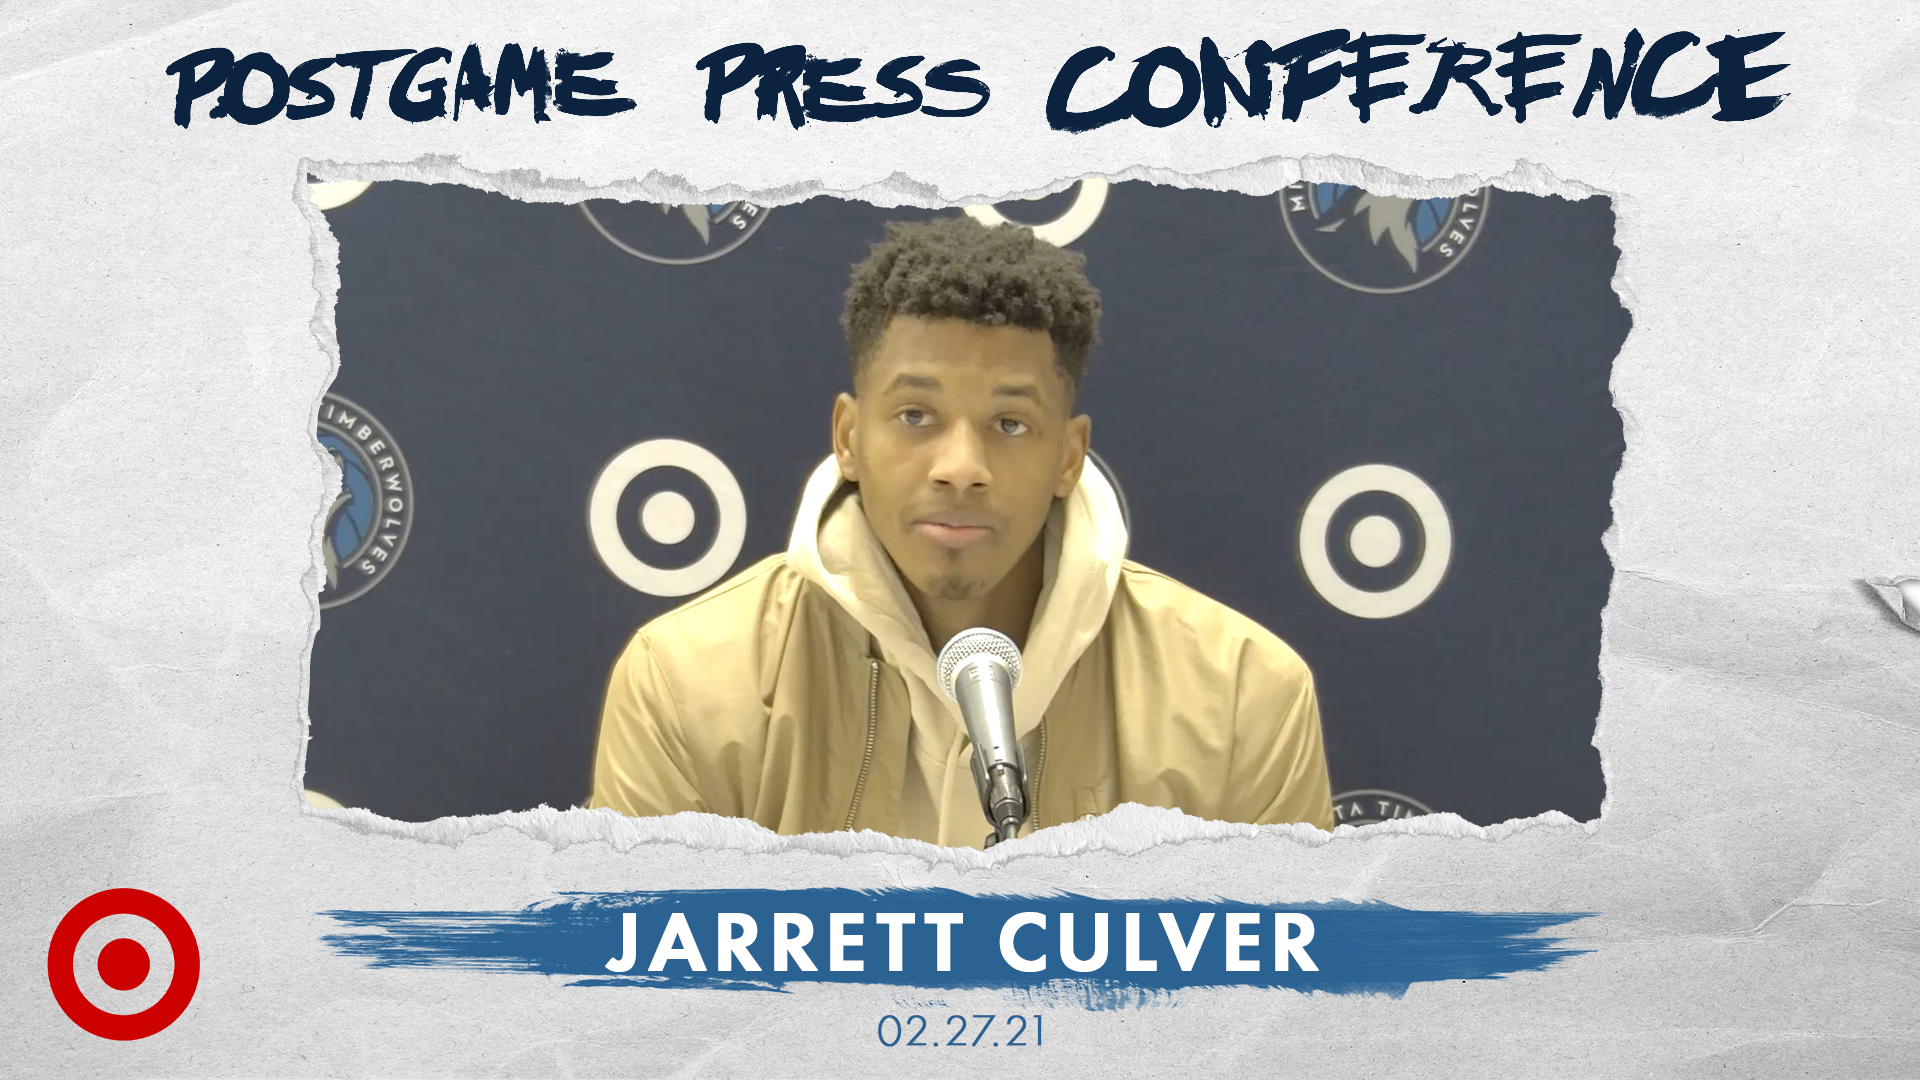 Jarrett Culver Postgame Press Conference - February 27, 2021